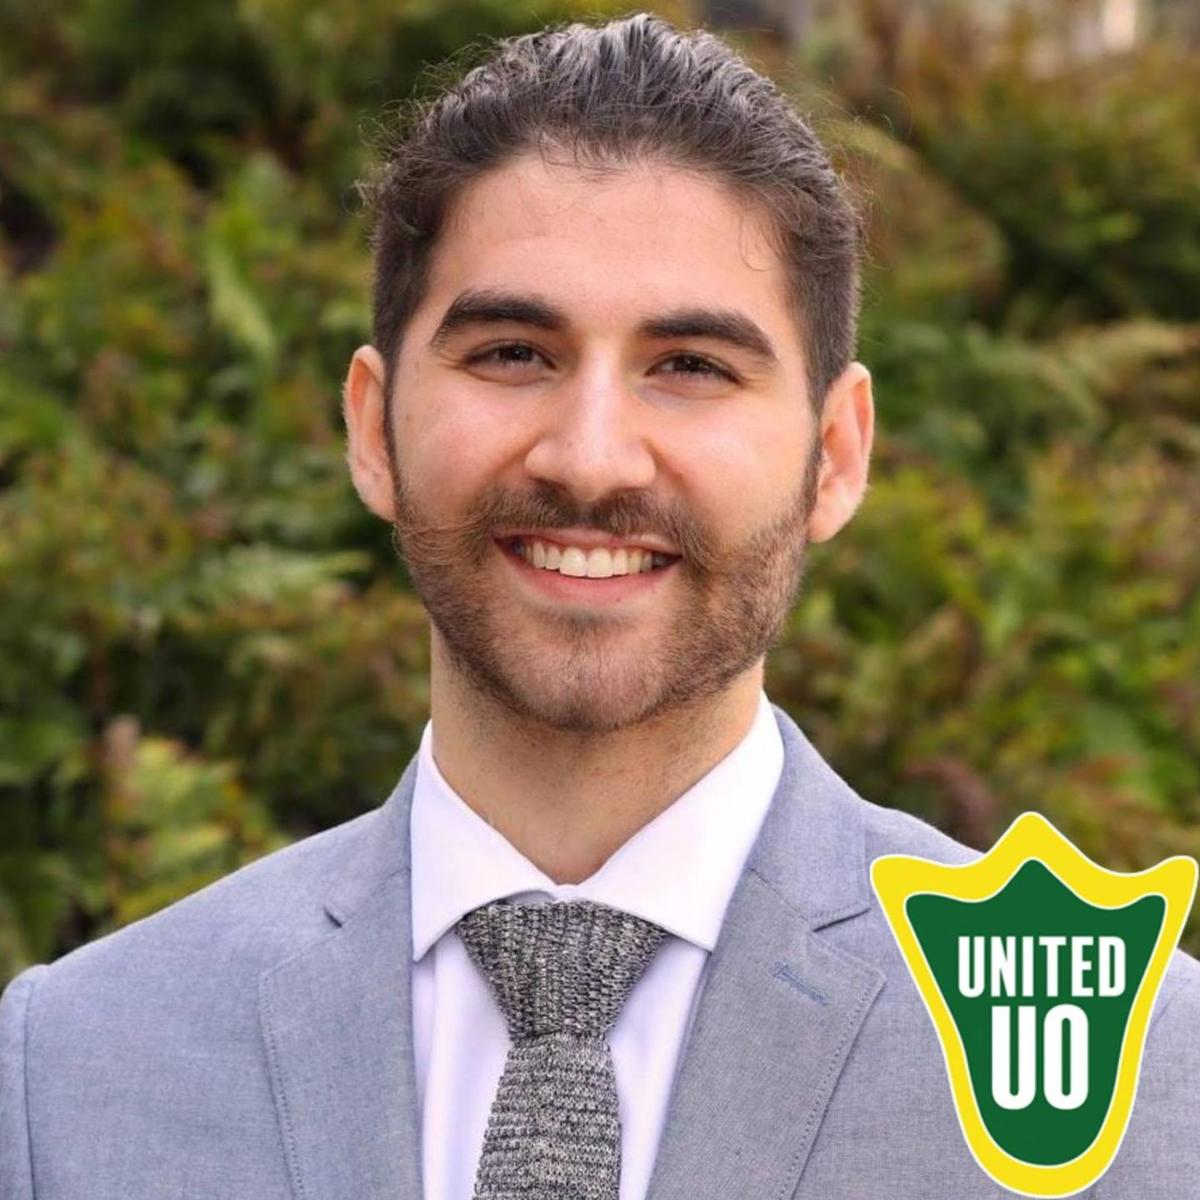 Ducks Together and United UO: A look at the two campaigns competing for 32 open ASUO positions